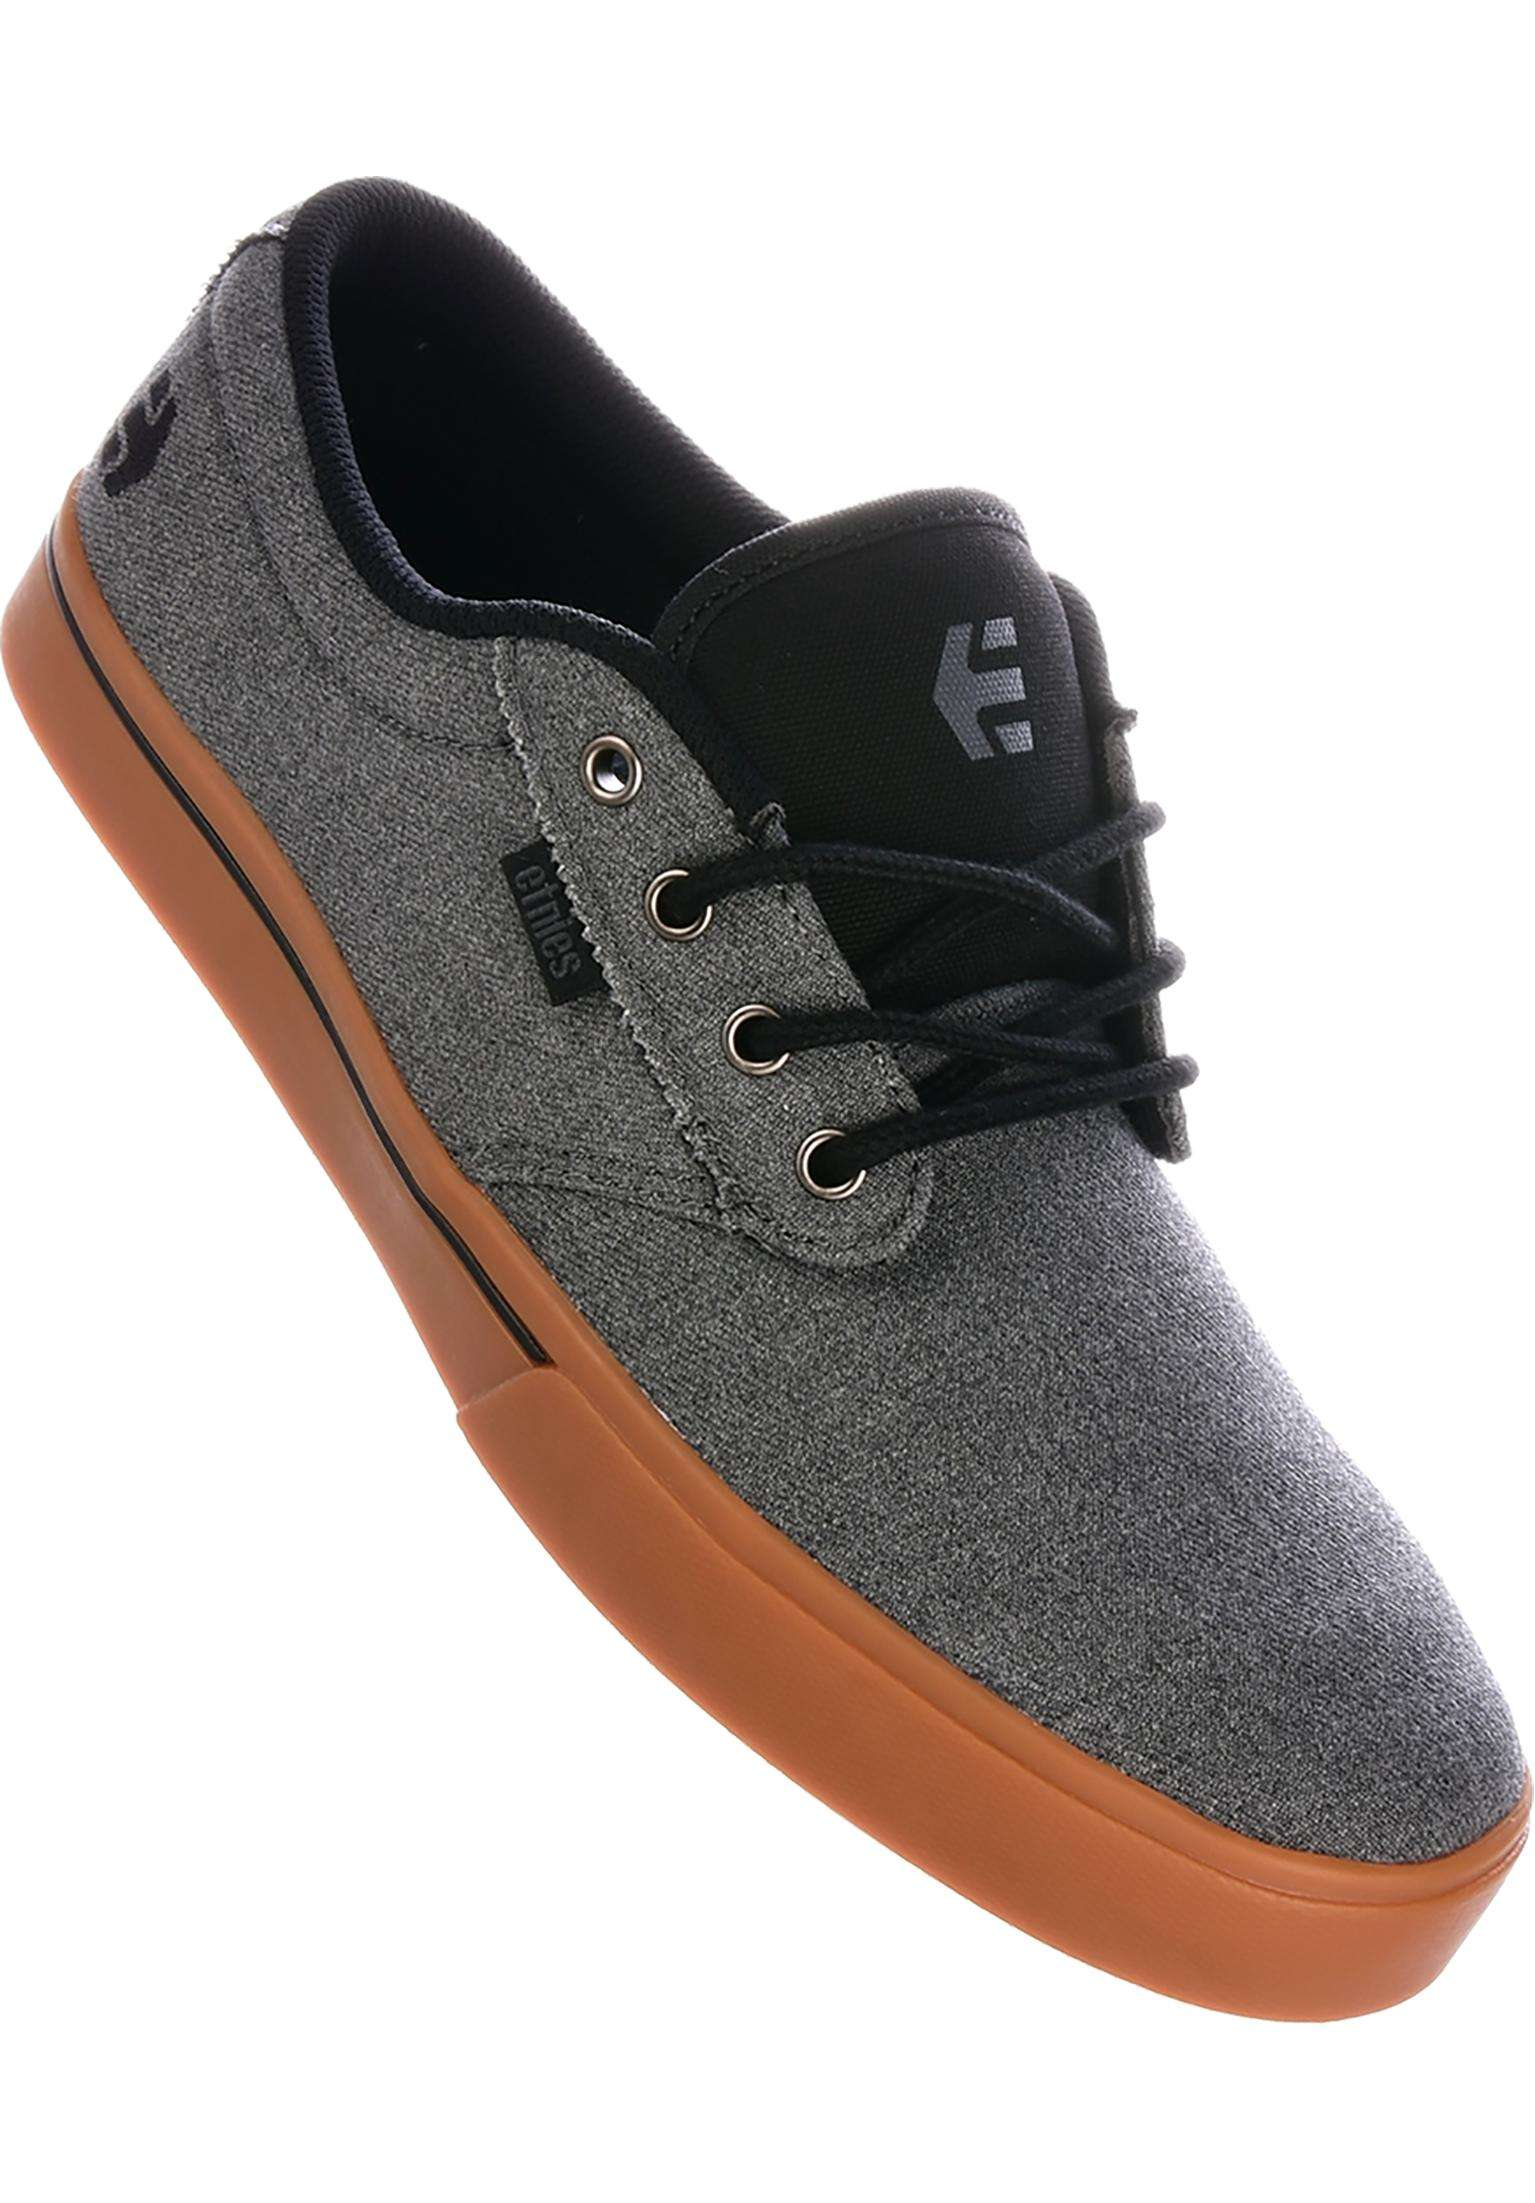 38781fcfa572e3 Jameson 2 Eco etnies Alle Schuhe in grey-black-orange für Herren